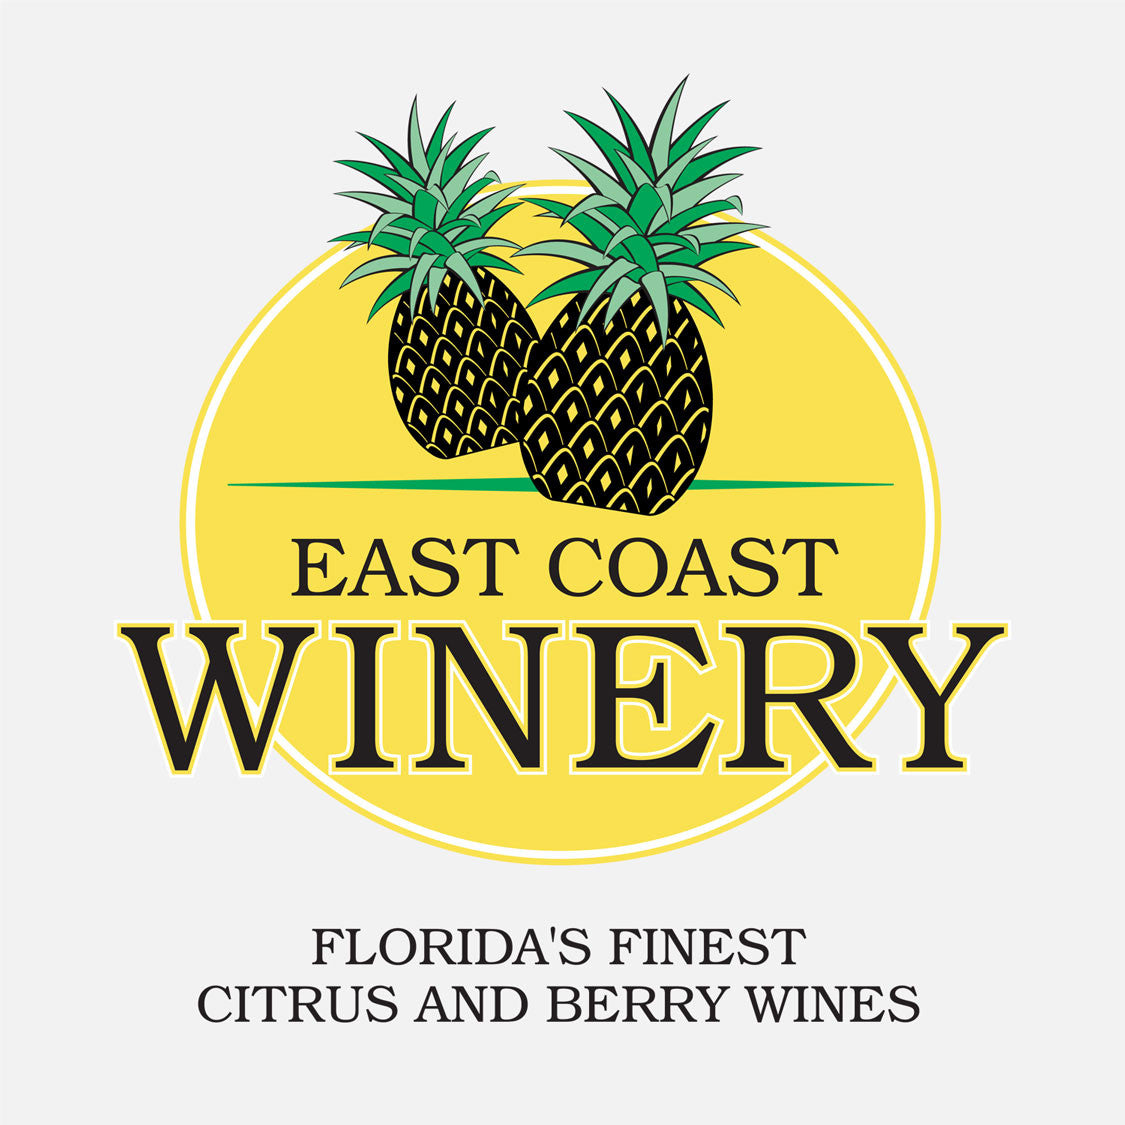 East Coast Winery is a shop that sells Florida citrus and berry wines. The logo is a graphic of pineapples over a yellow background.